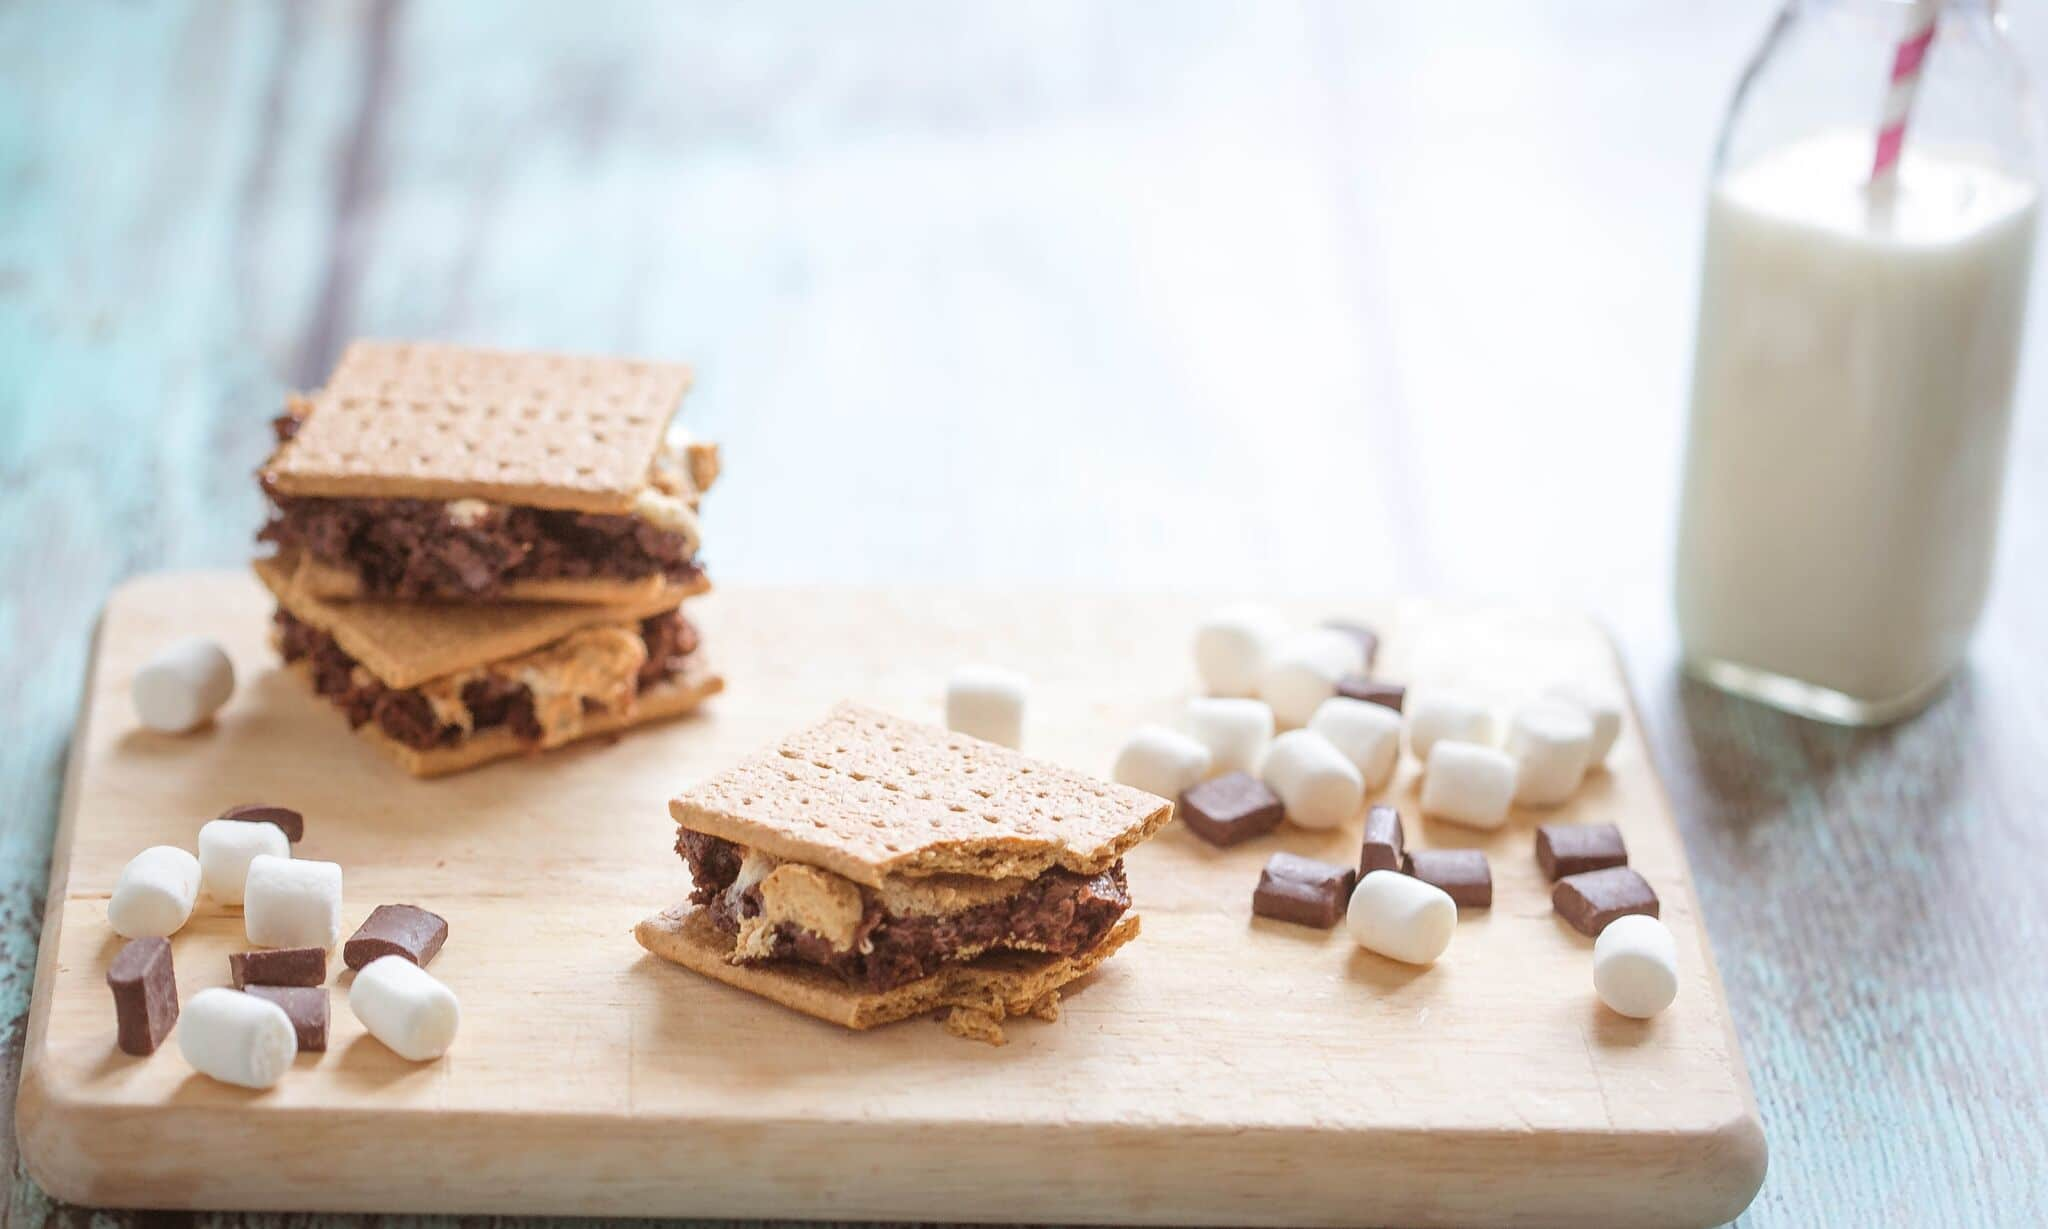 Serve finished s'more brownies with graham crackers.